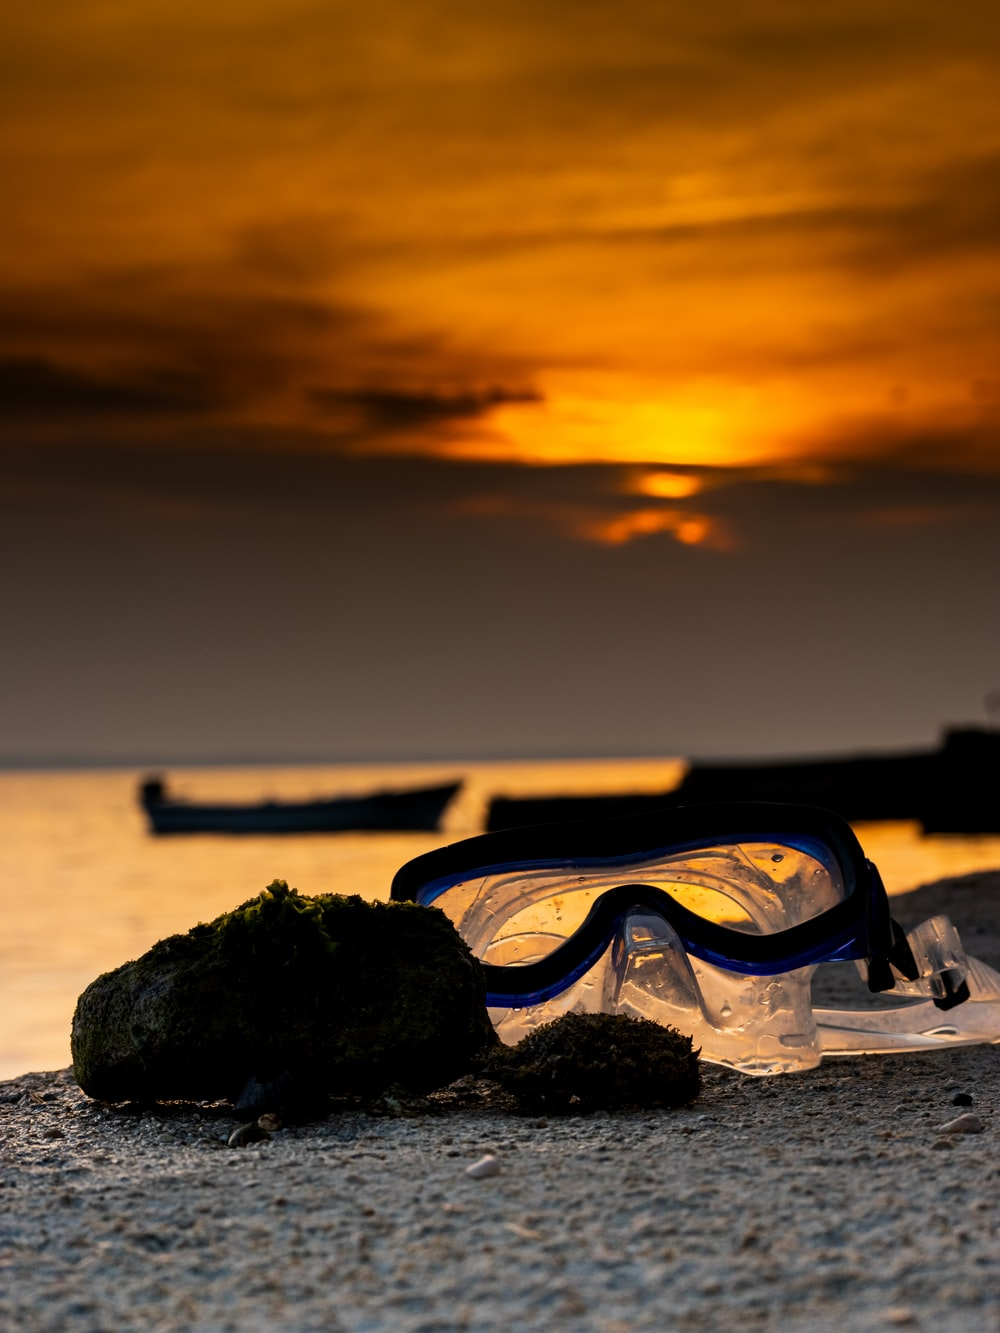 snorkeling goggles on sand dunes during golden hour